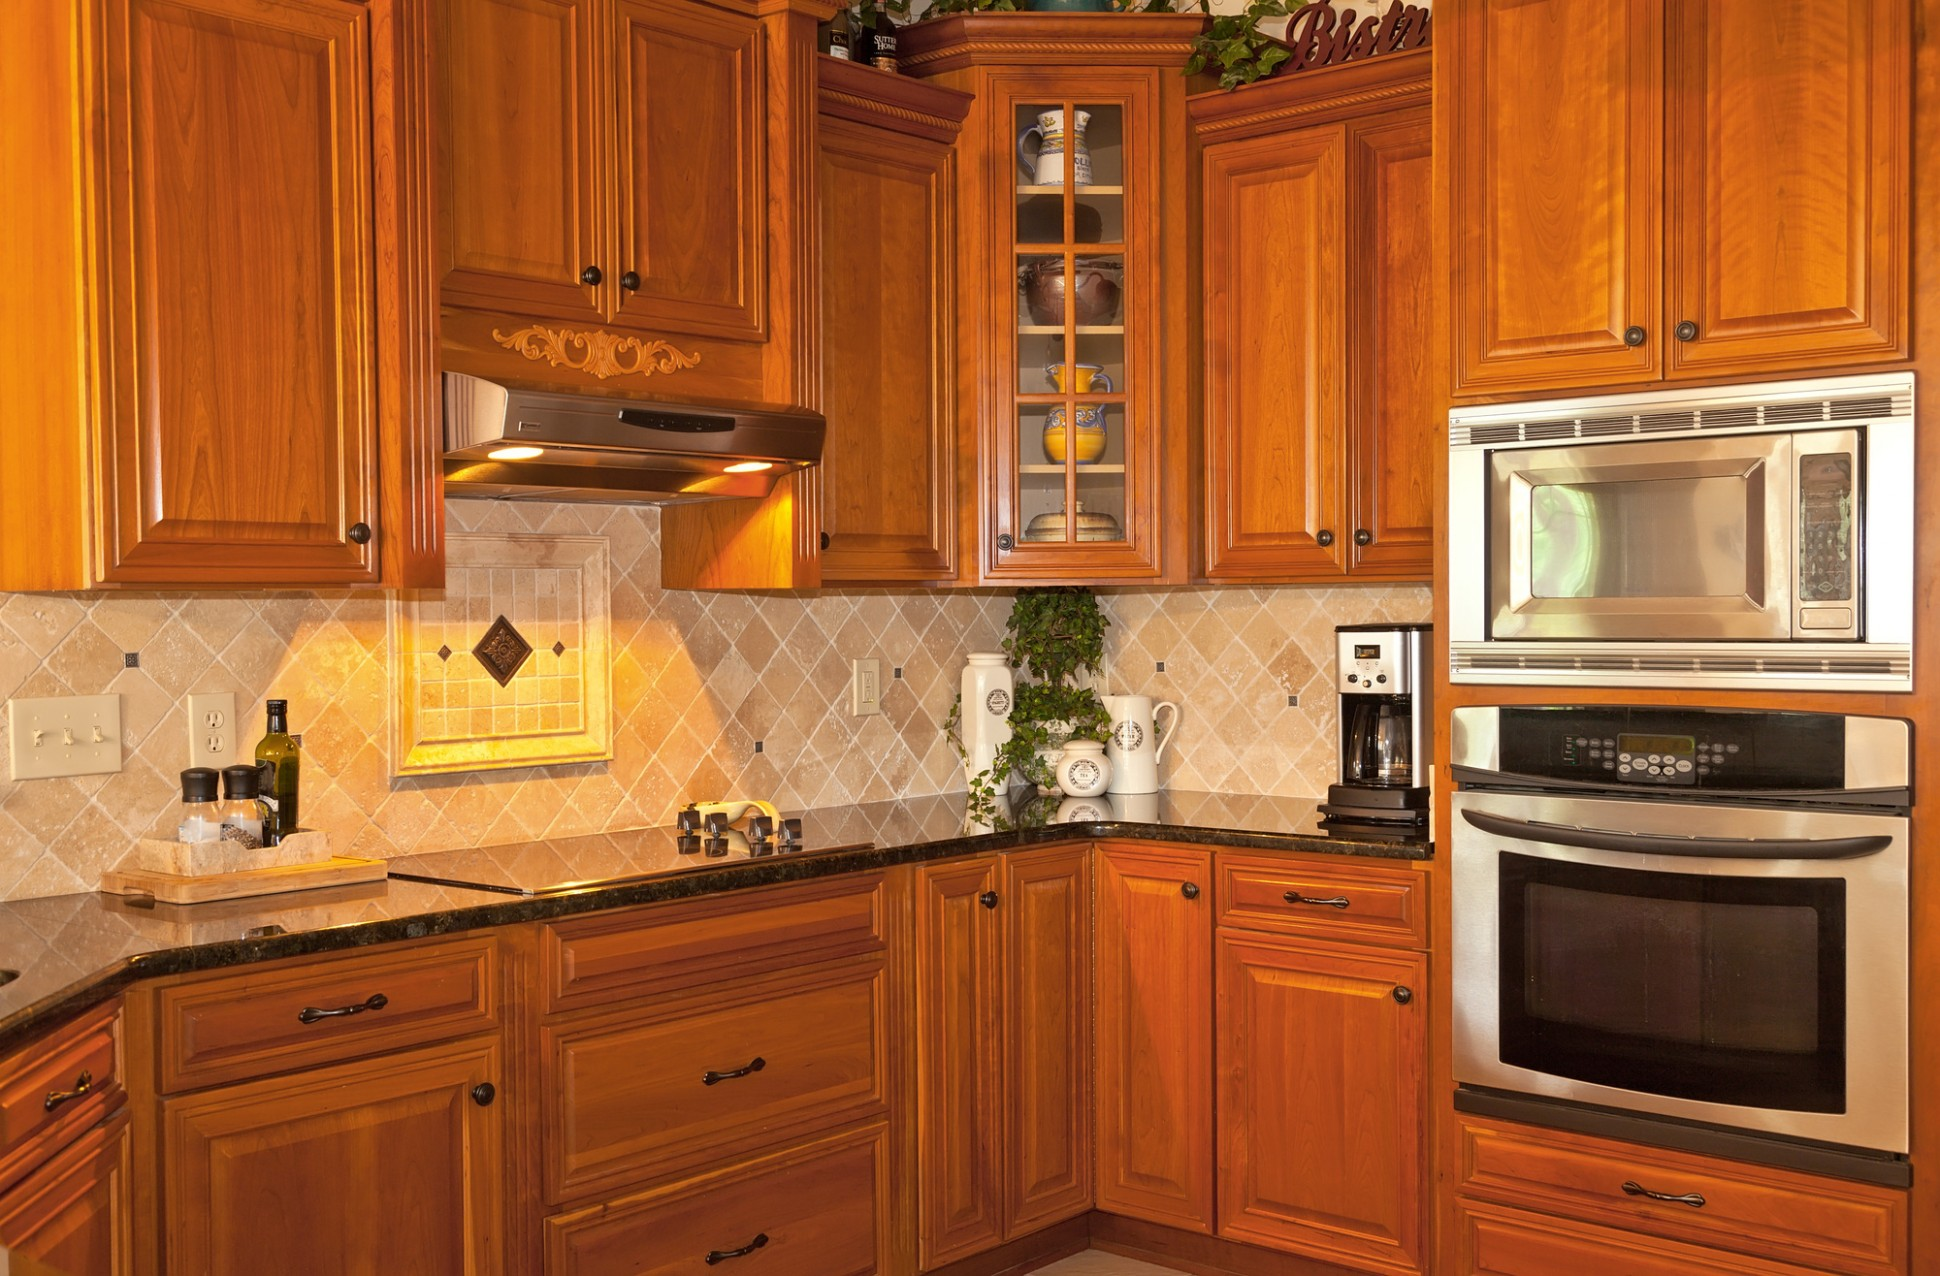 Kitchen Cabinet Dimensions: Your Guide to the Standard Sizes - Base Kitchen Cabinets Are Typically